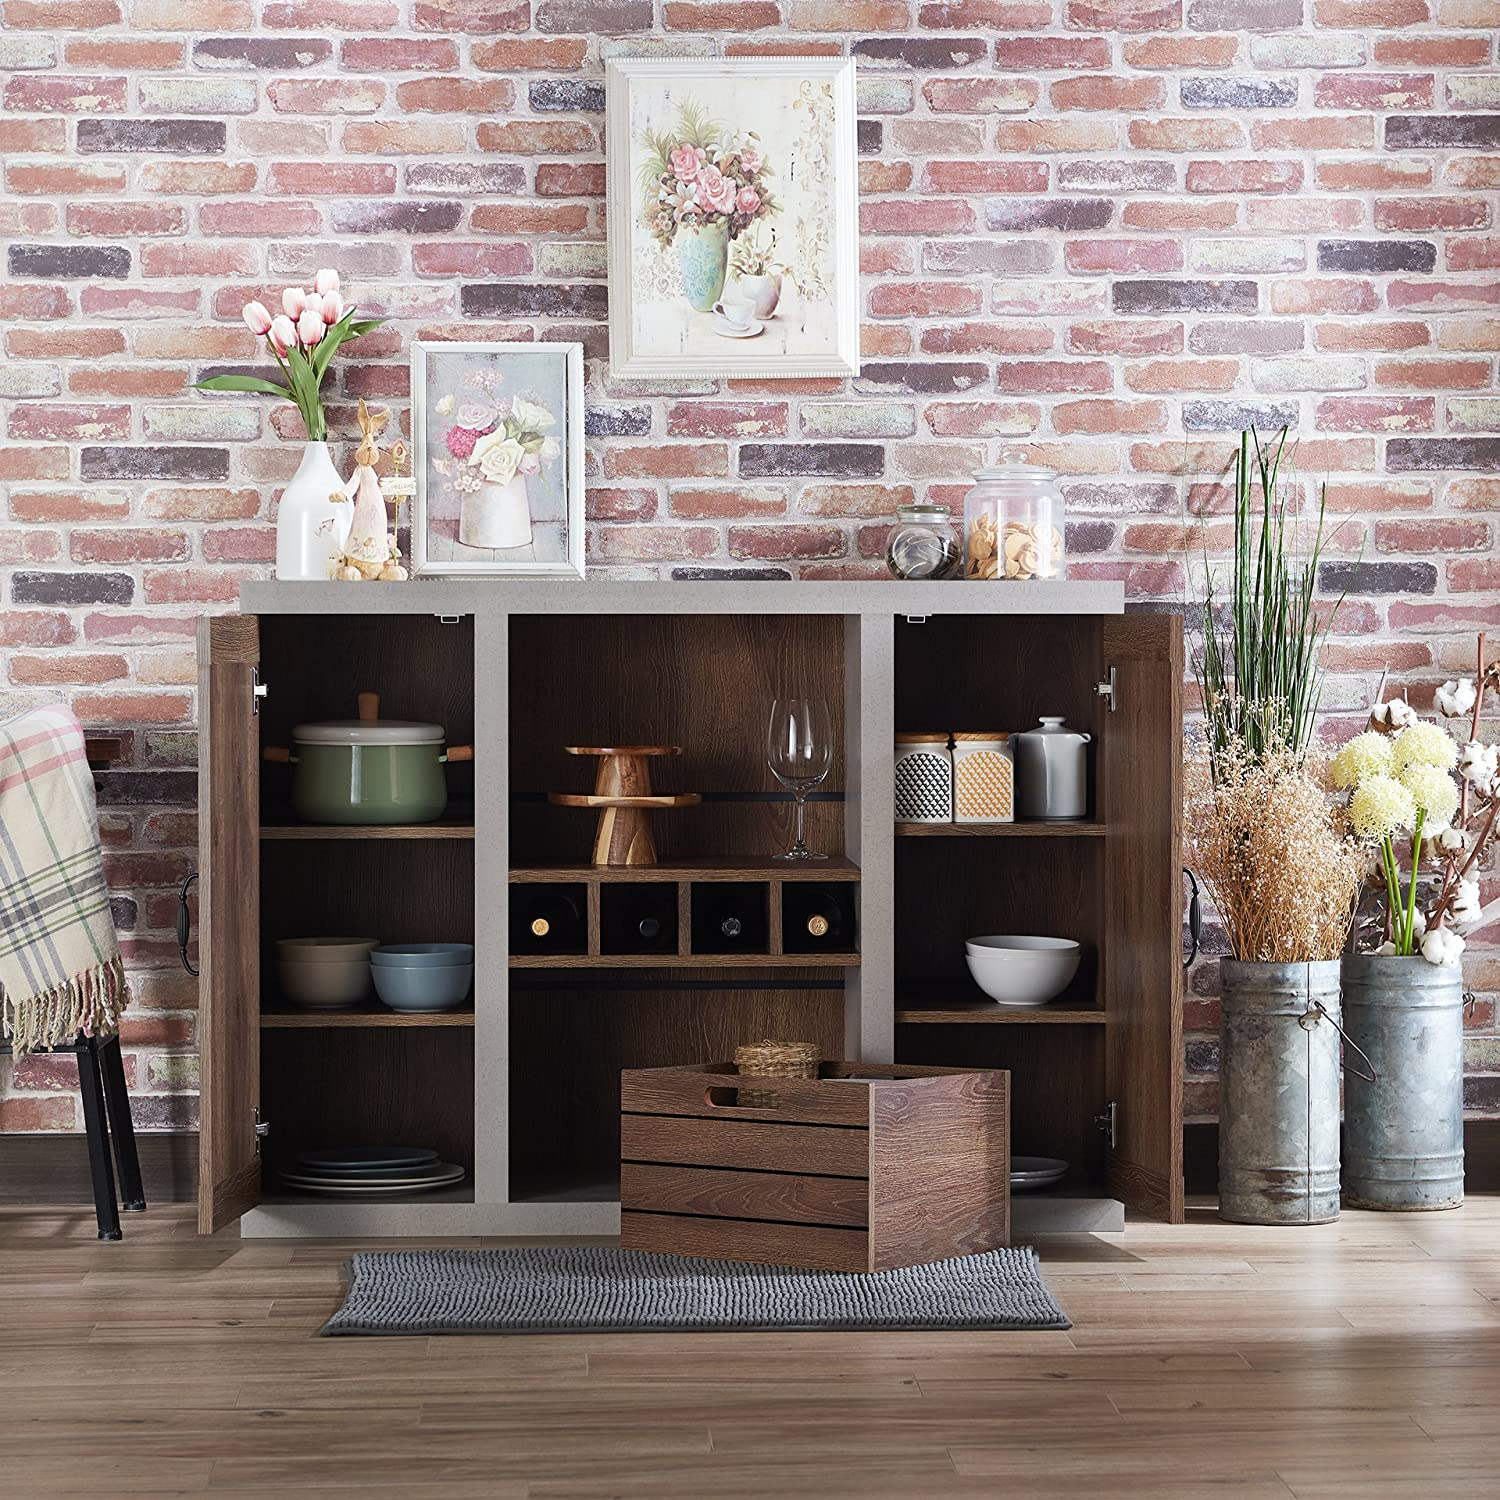 2b034a213c47f HOMES: Inside + Out FGI-1777C1 Cato Industrial Buffet, Black/Cement ...